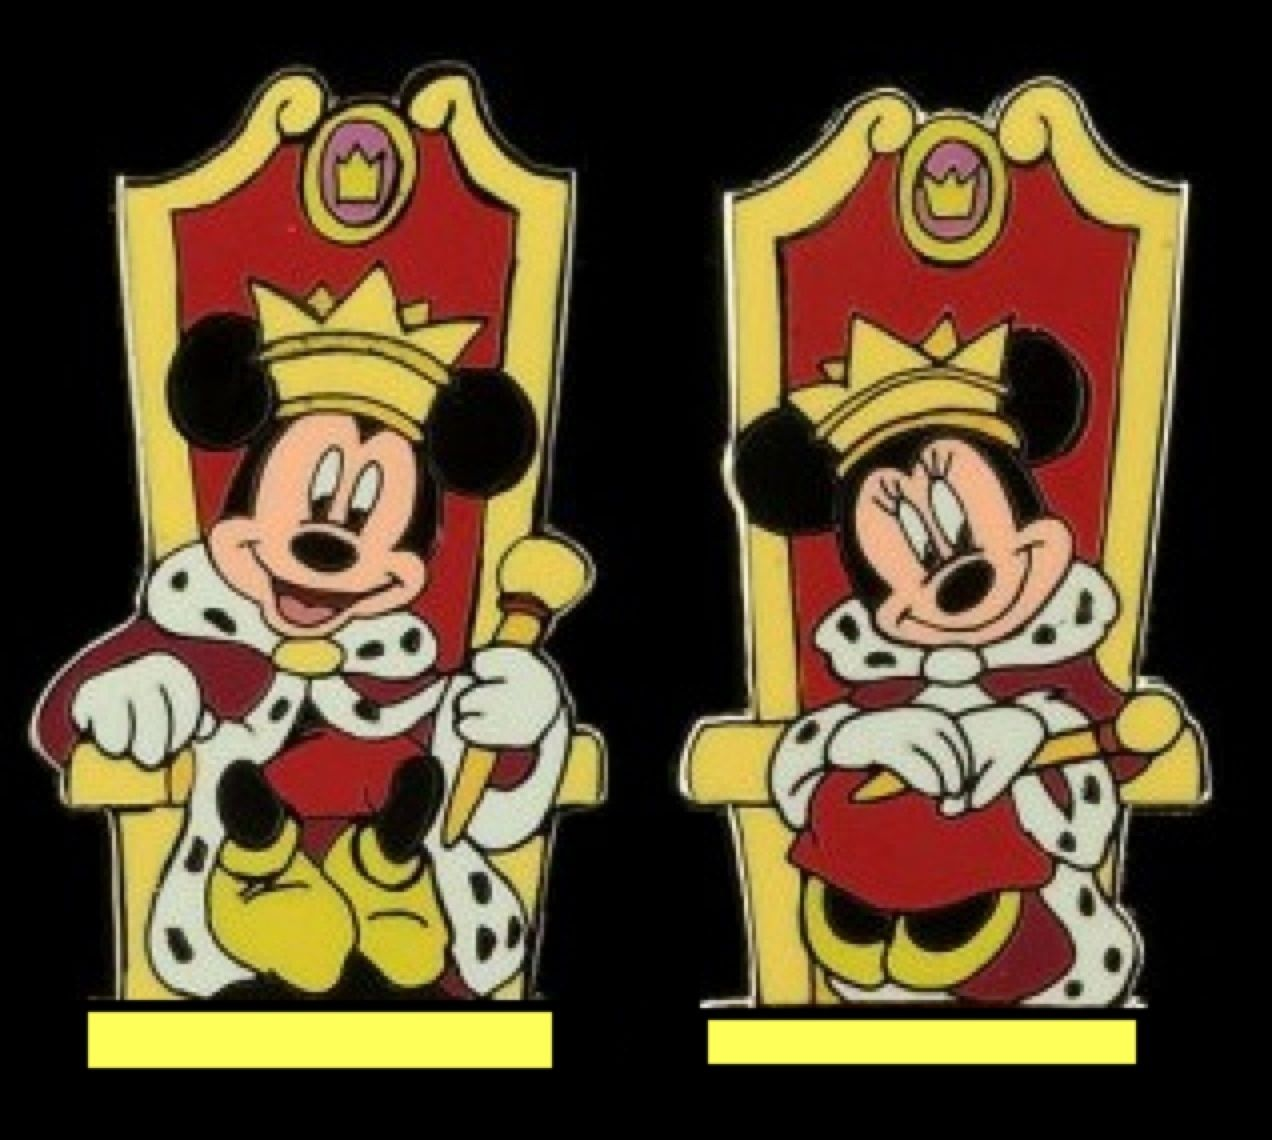 King Mickey And Queen Minnie Medieval Mickey Mouse Cartoon Mickey Disney Fan Art